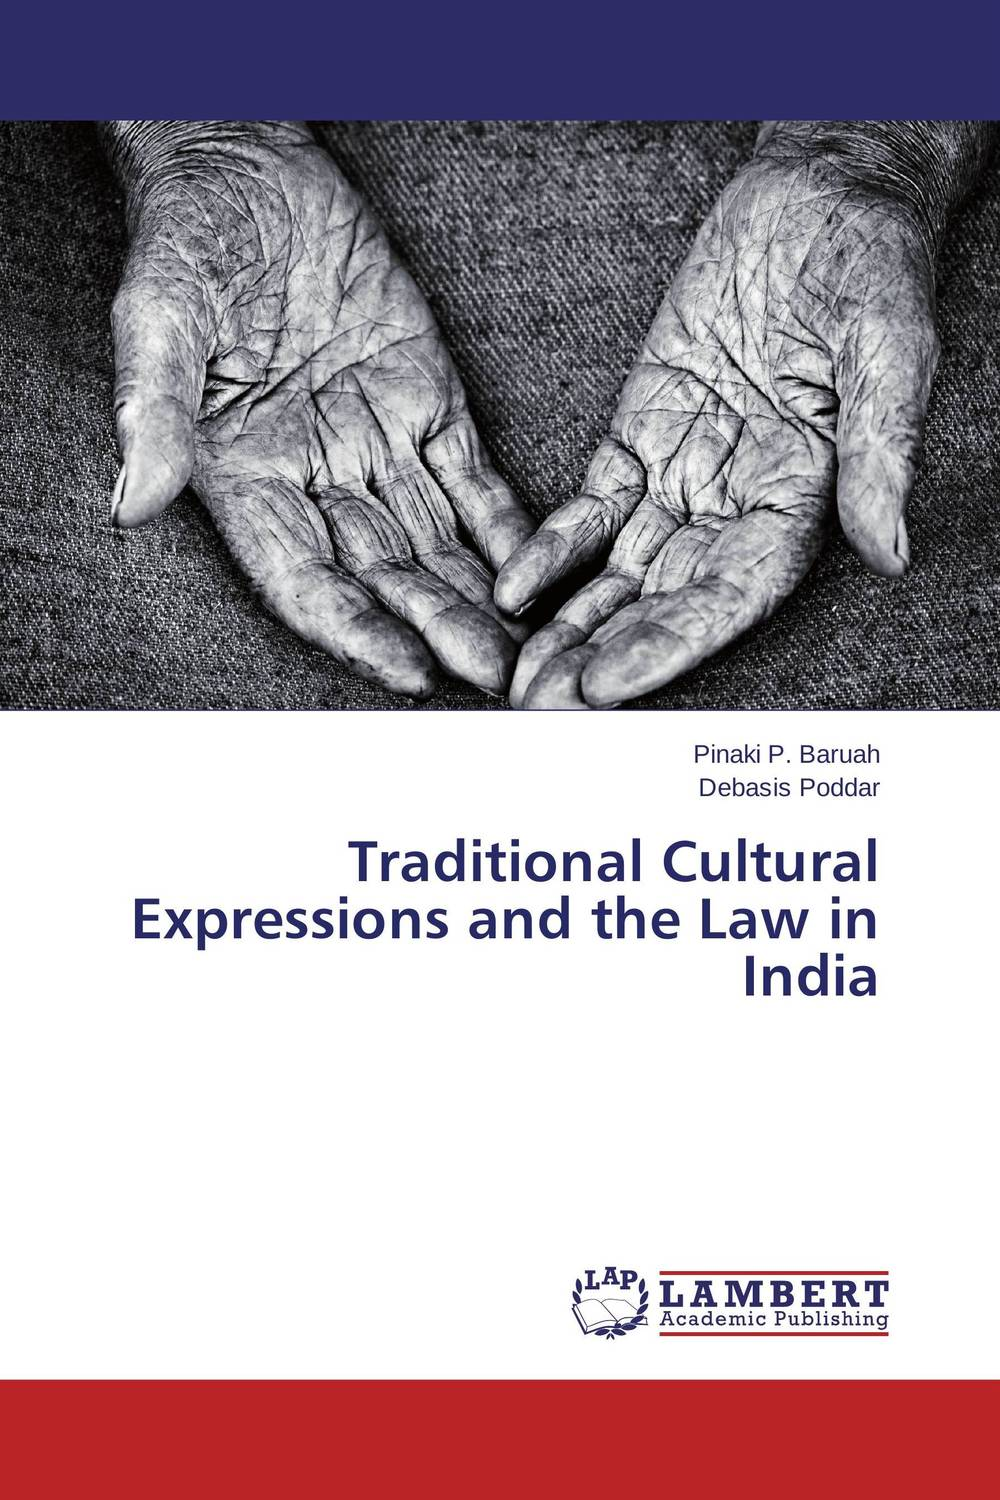 Traditional Cultural Expressions and the Law in India anne klein часы anne klein 1019wtwt коллекция diamond